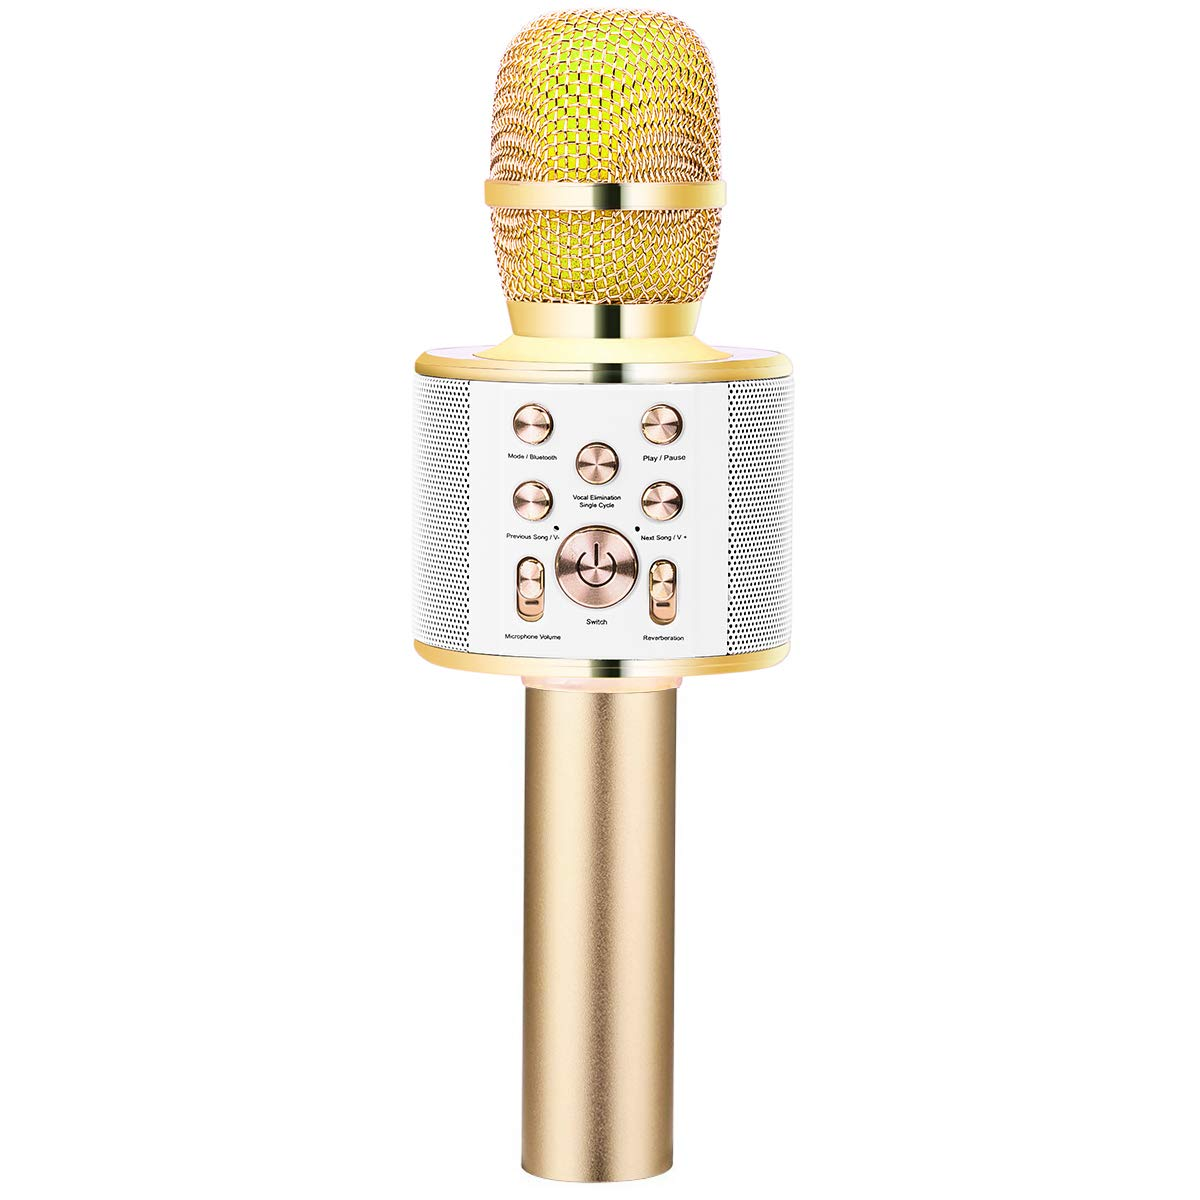 VERKB Wireless Karaoke Microphone Speaker Q10 Plus, Portable Bluetooth Singing Machine for iPhone Android Smartphone Home Birthday Party Gift Idea (Light Gold)